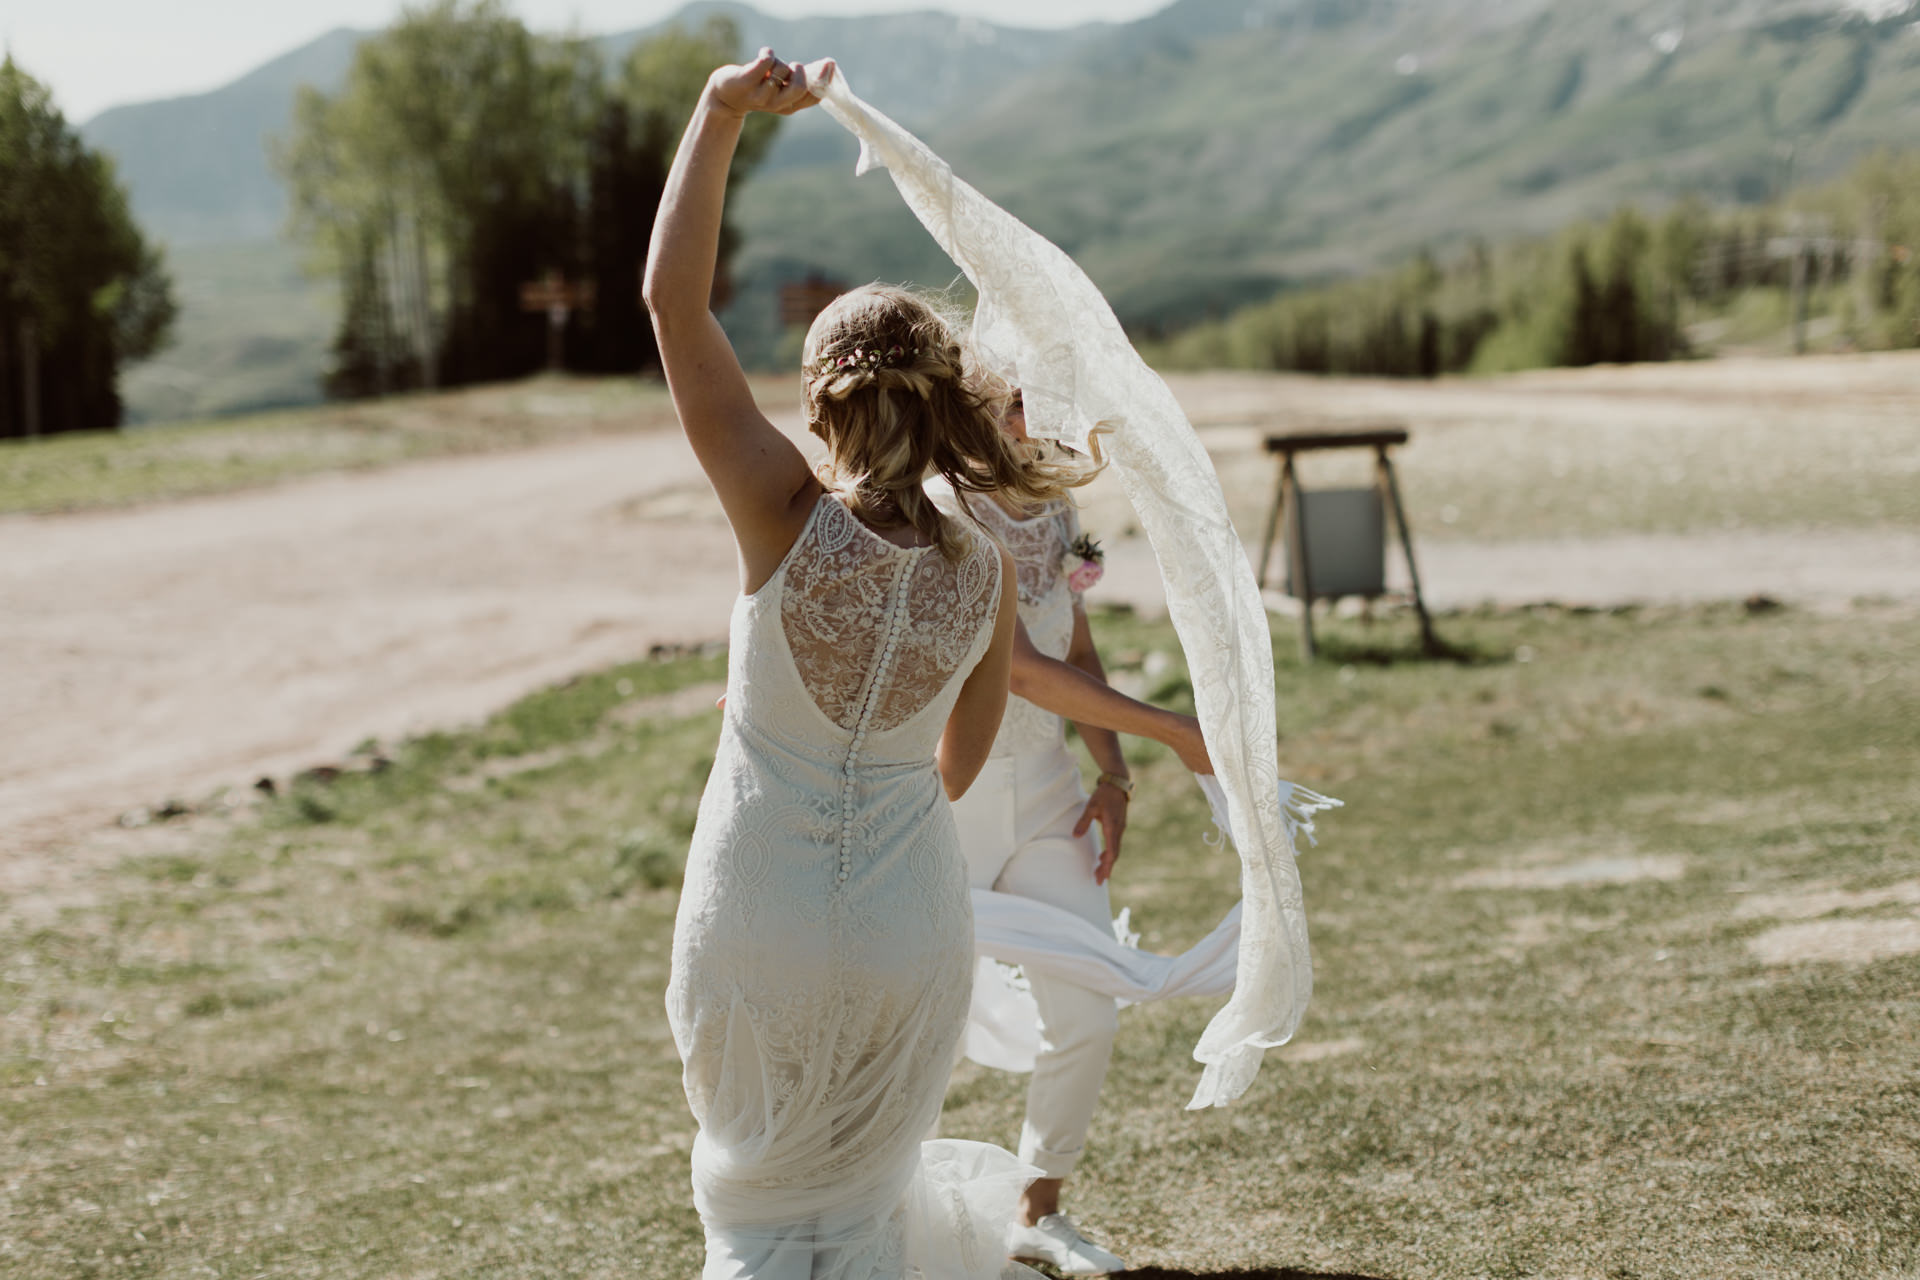 cedarandpines-intimate-san-sofia-telluride-colorado-wedding-29.jpg